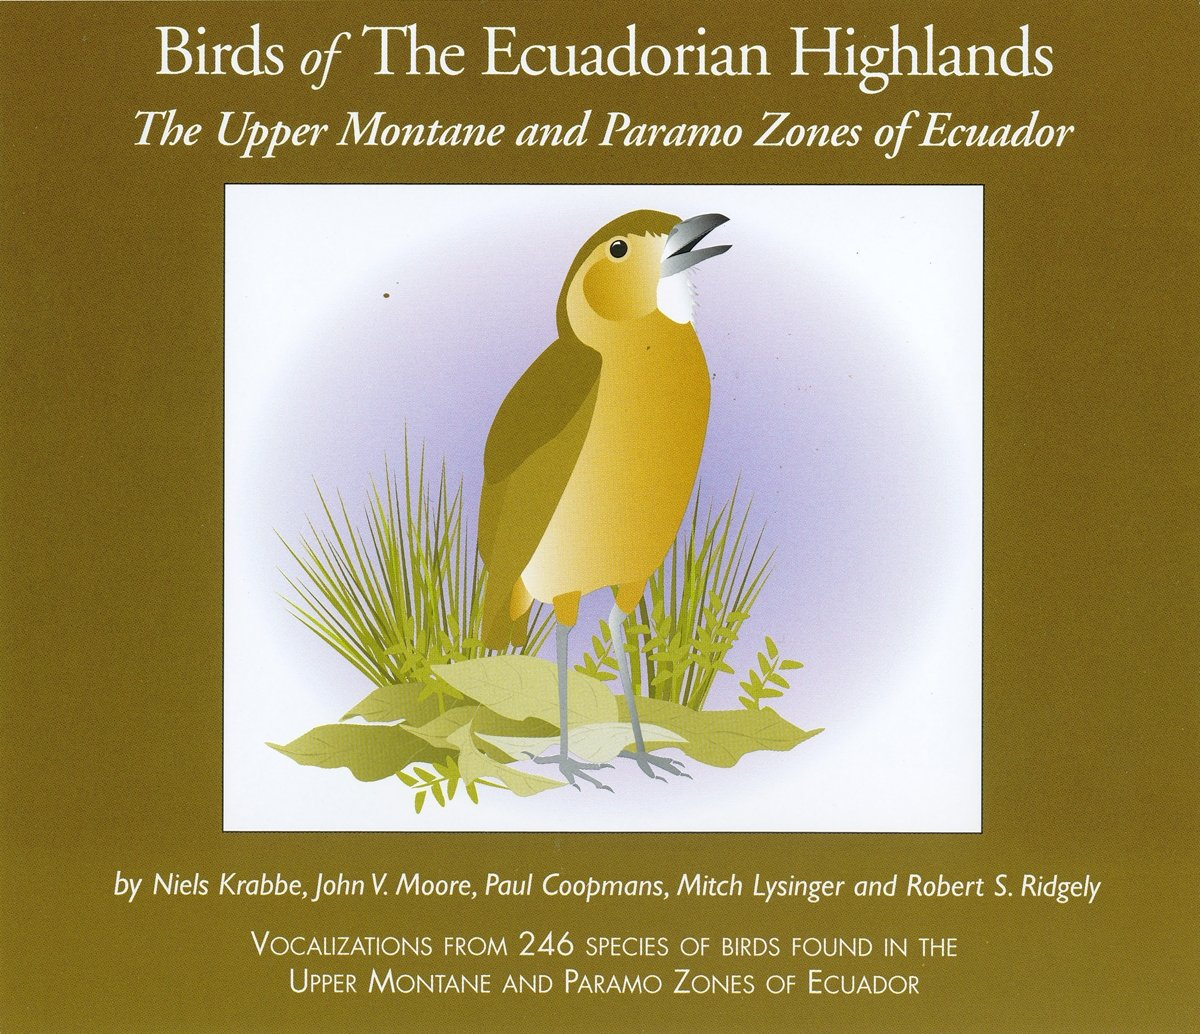 Birds of The Ecuadorian Highlands: The Upper Montane and Paramo Zones of Ecuador